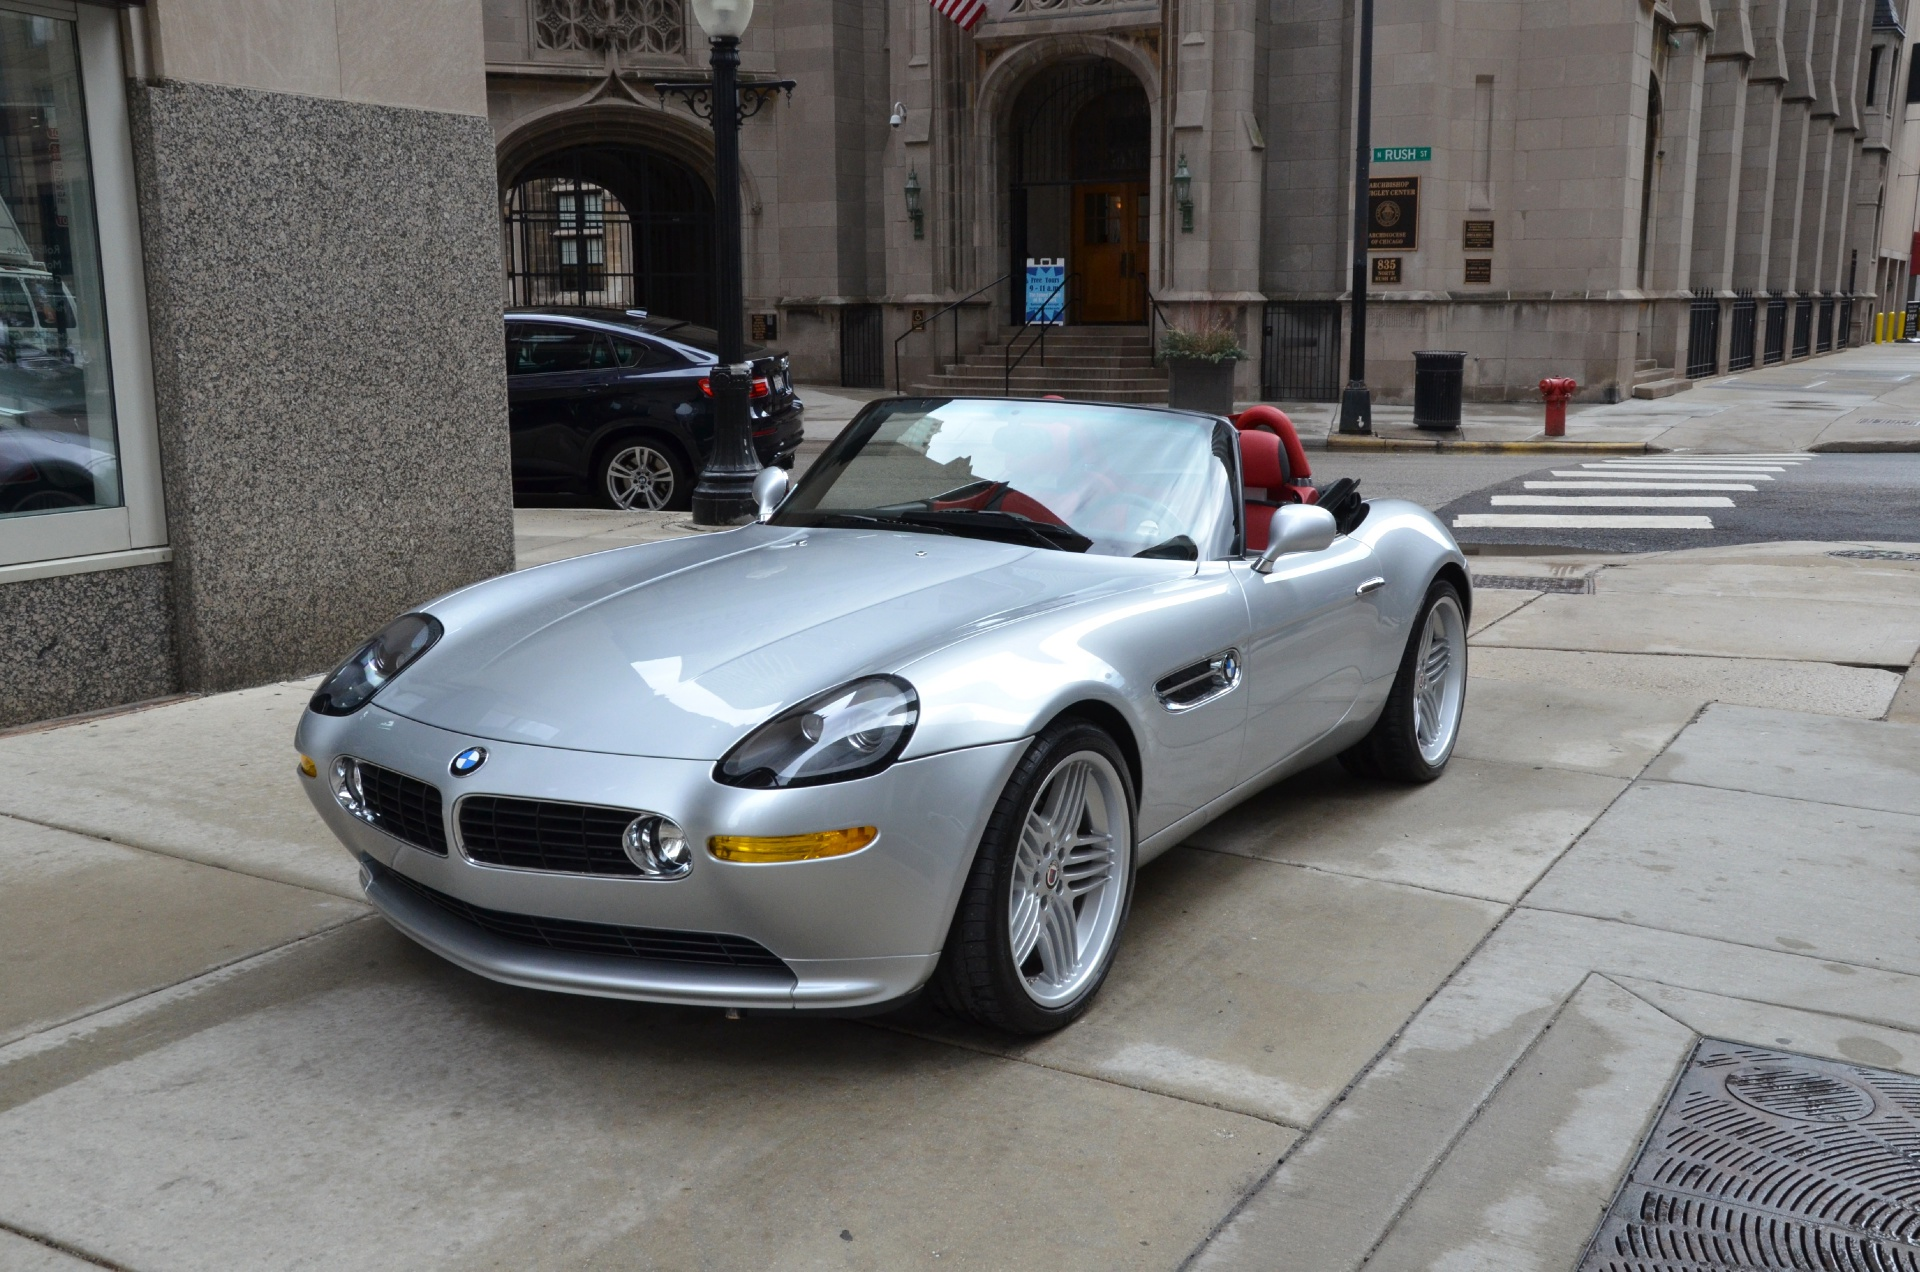 2003 Bmw Z8 Alpina Used Bentley Used Rolls Royce Used Lamborghini Used Bugatti